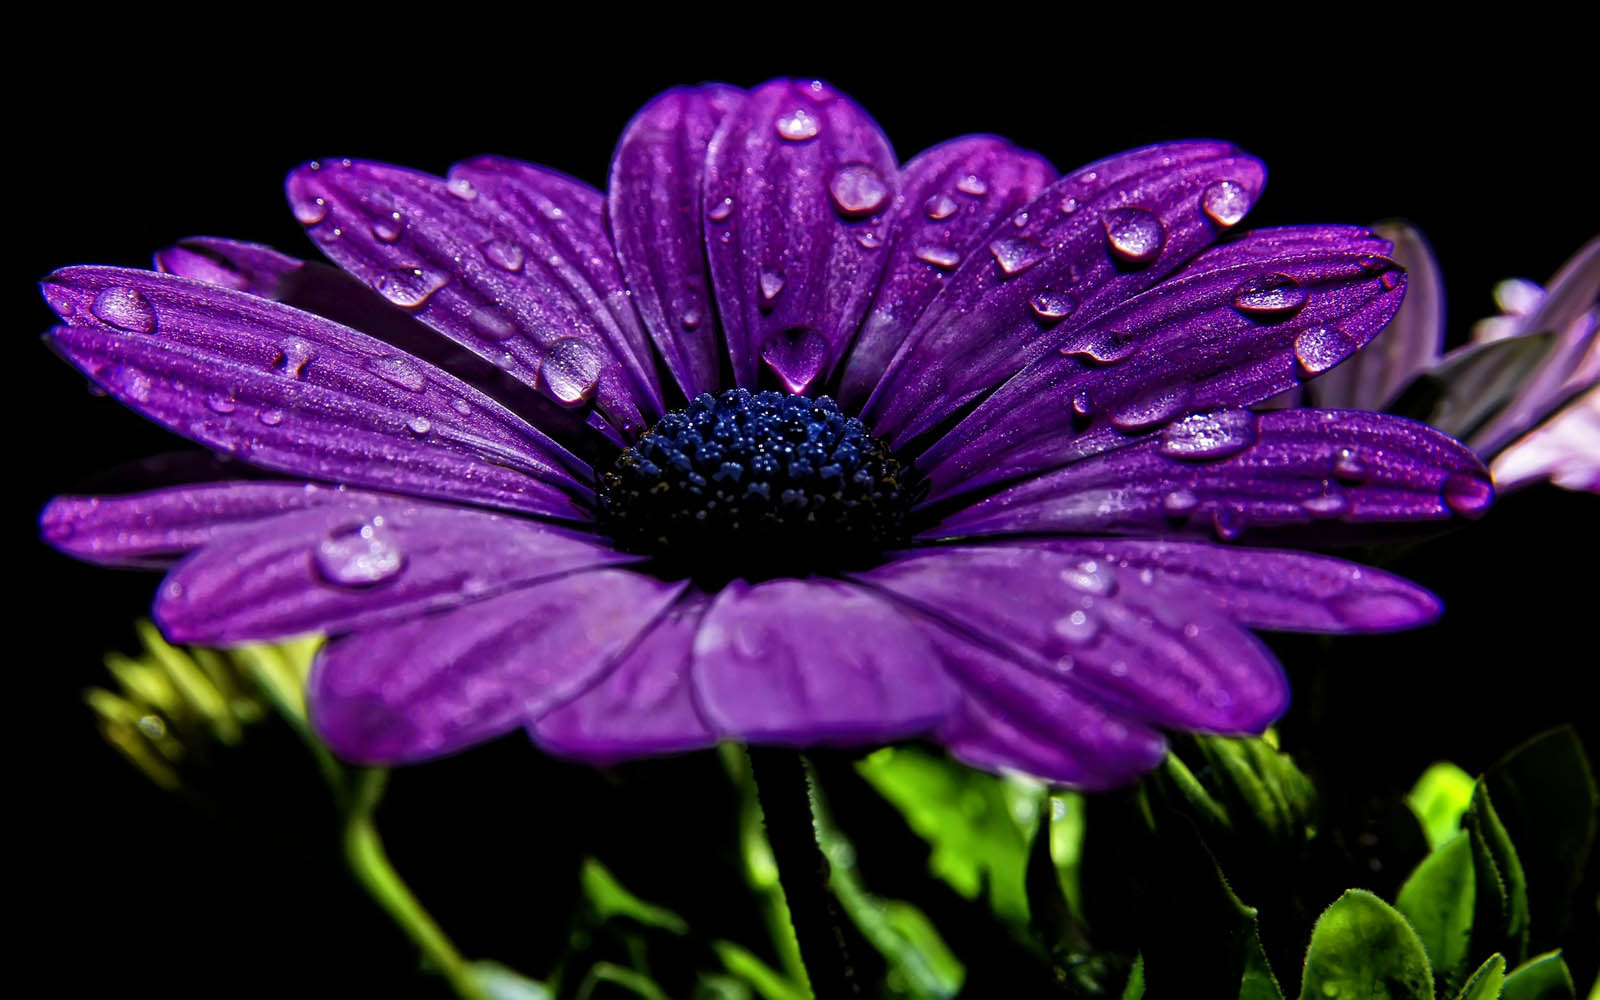 Tag Spring Drops Wallpapers Backgrounds Photos Images and Pictures 1600x1000